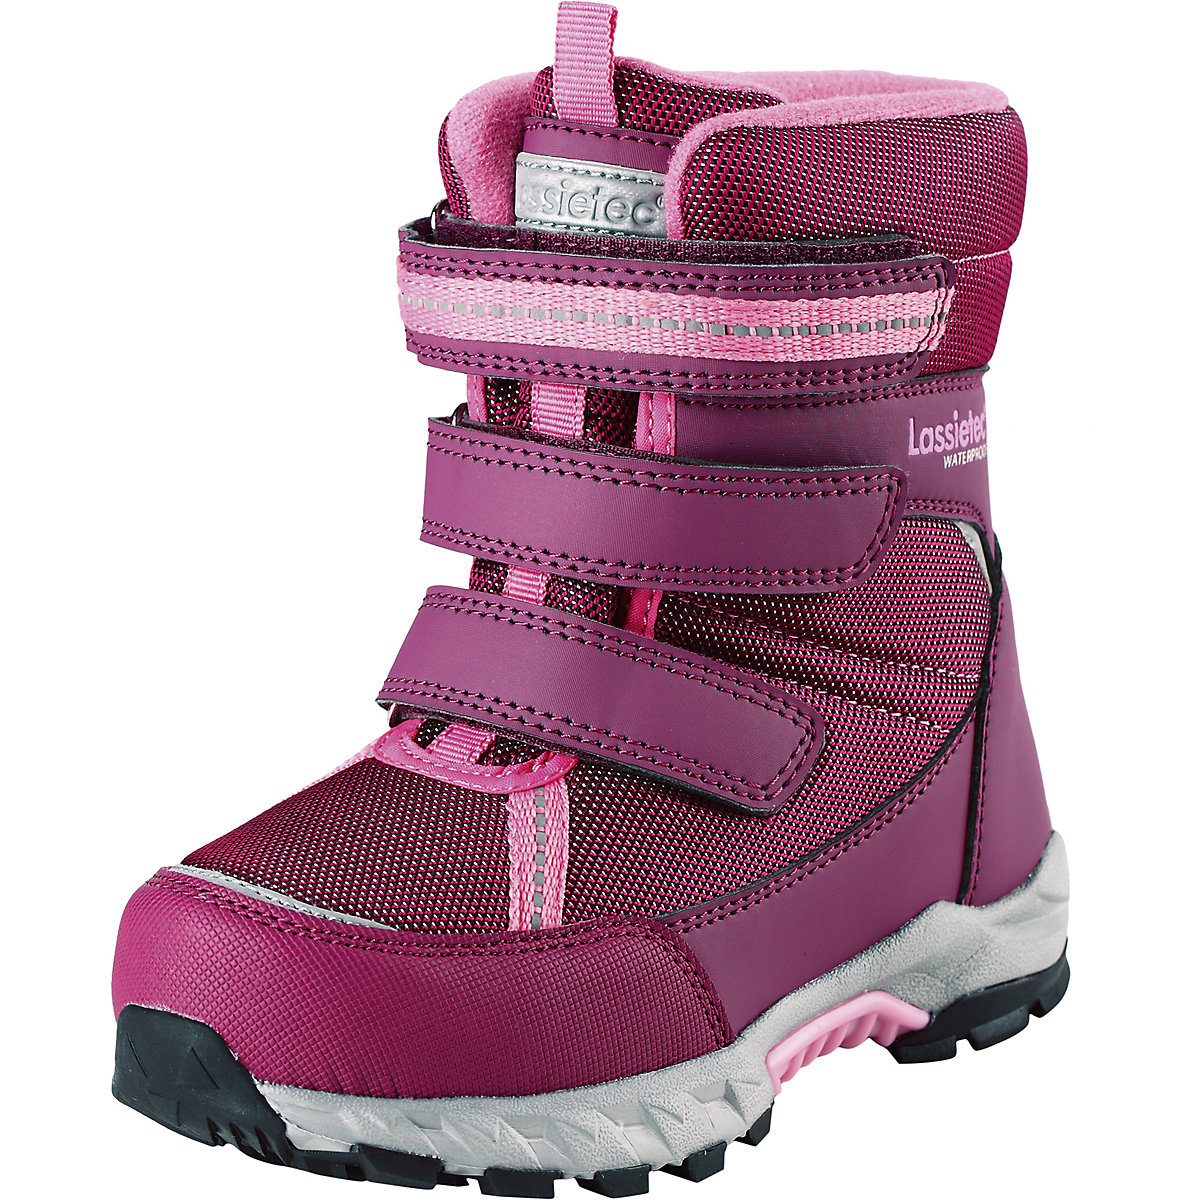 LASSIE Boots 8624783 For girls Warm Kids Baby shoes winter girl flamingo winter waterproof wool warm high quality kids shoes orthotic arch anti slip size 23 28 snow boots for girl 82m qk 0921